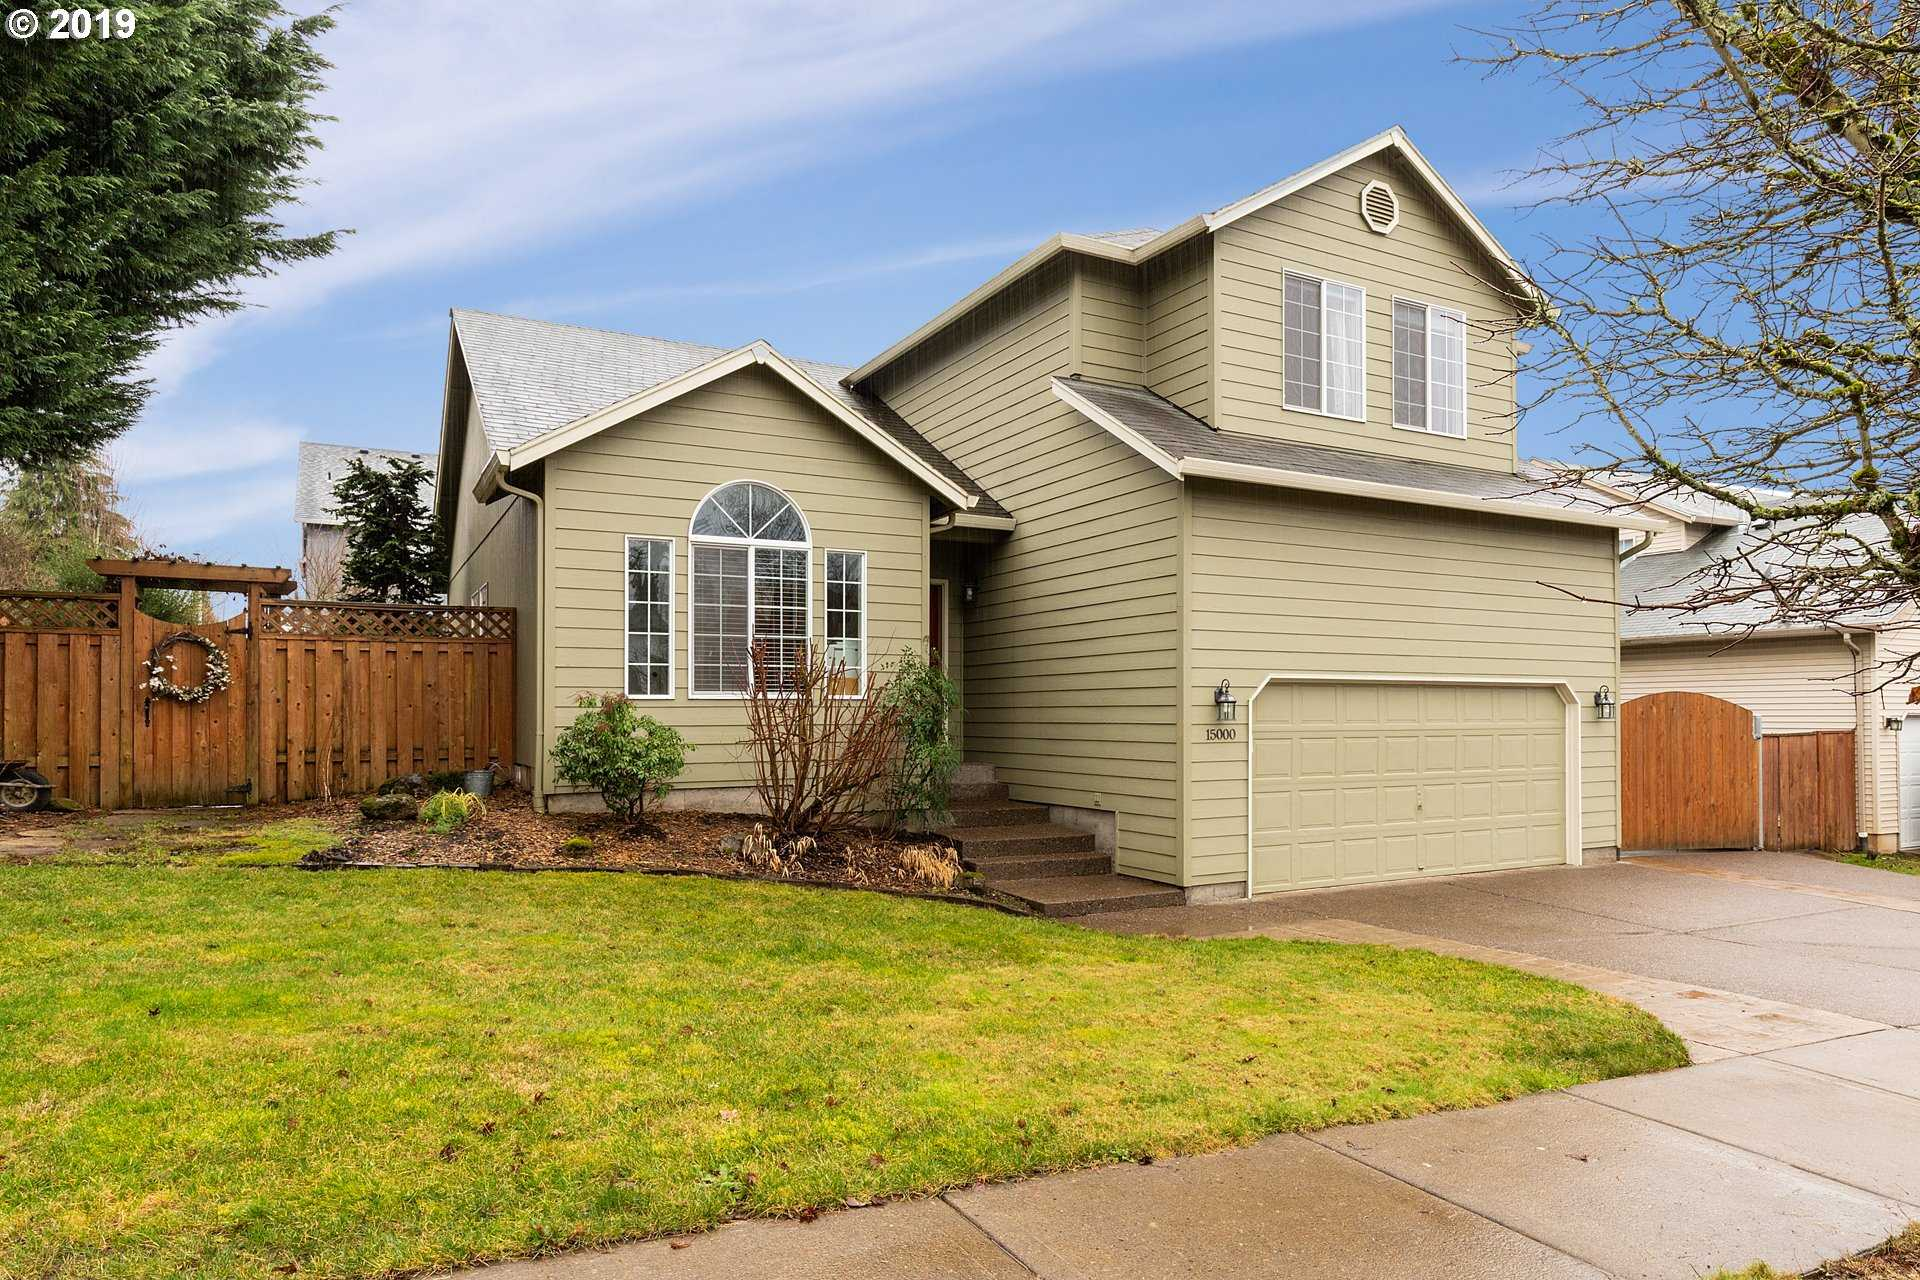 $435,000 - 4Br/3Ba -  for Sale in Oregon City